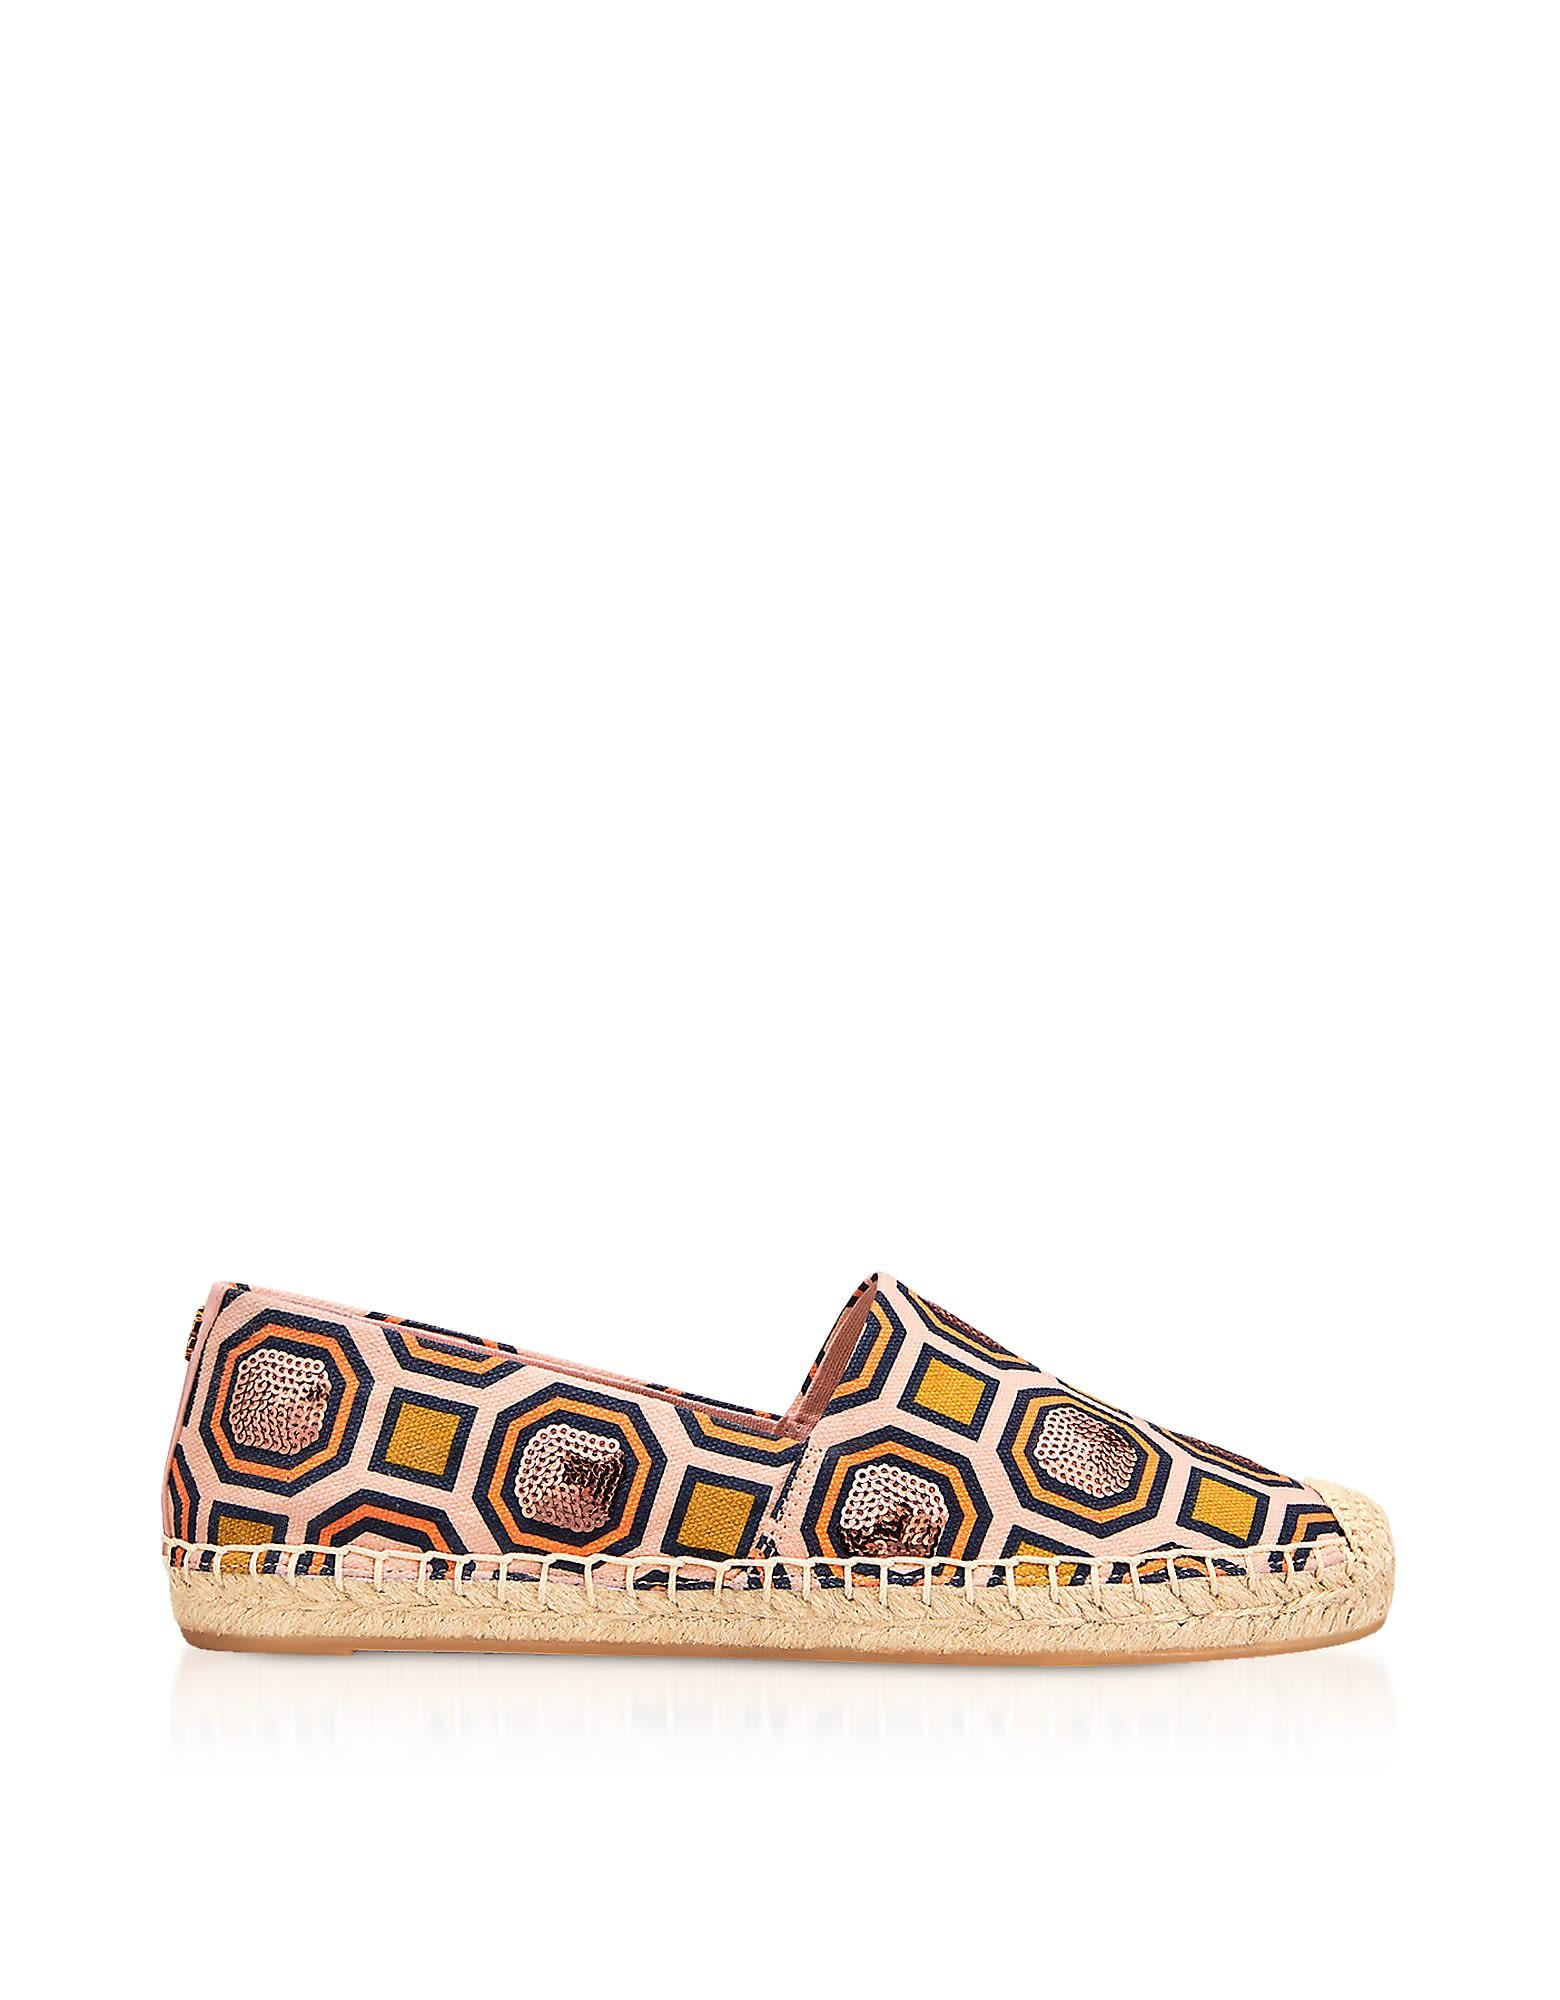 abd588e1c31 Tory Burch Cecily Ballet Pink Octagon Square Canvas Embellished Flat  Espadrilles In Multi